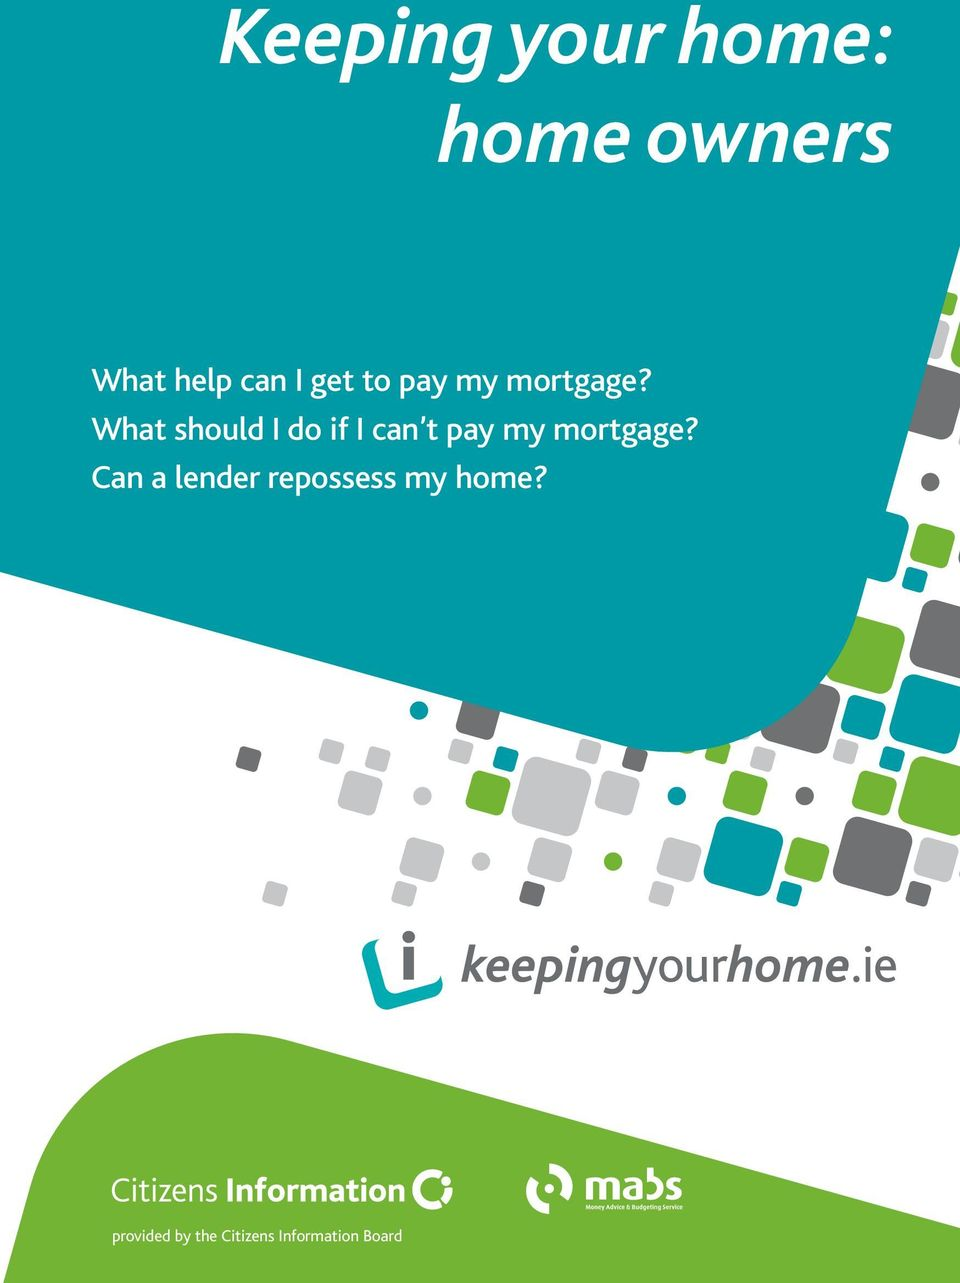 What should I do if I can t pay my mortgage?